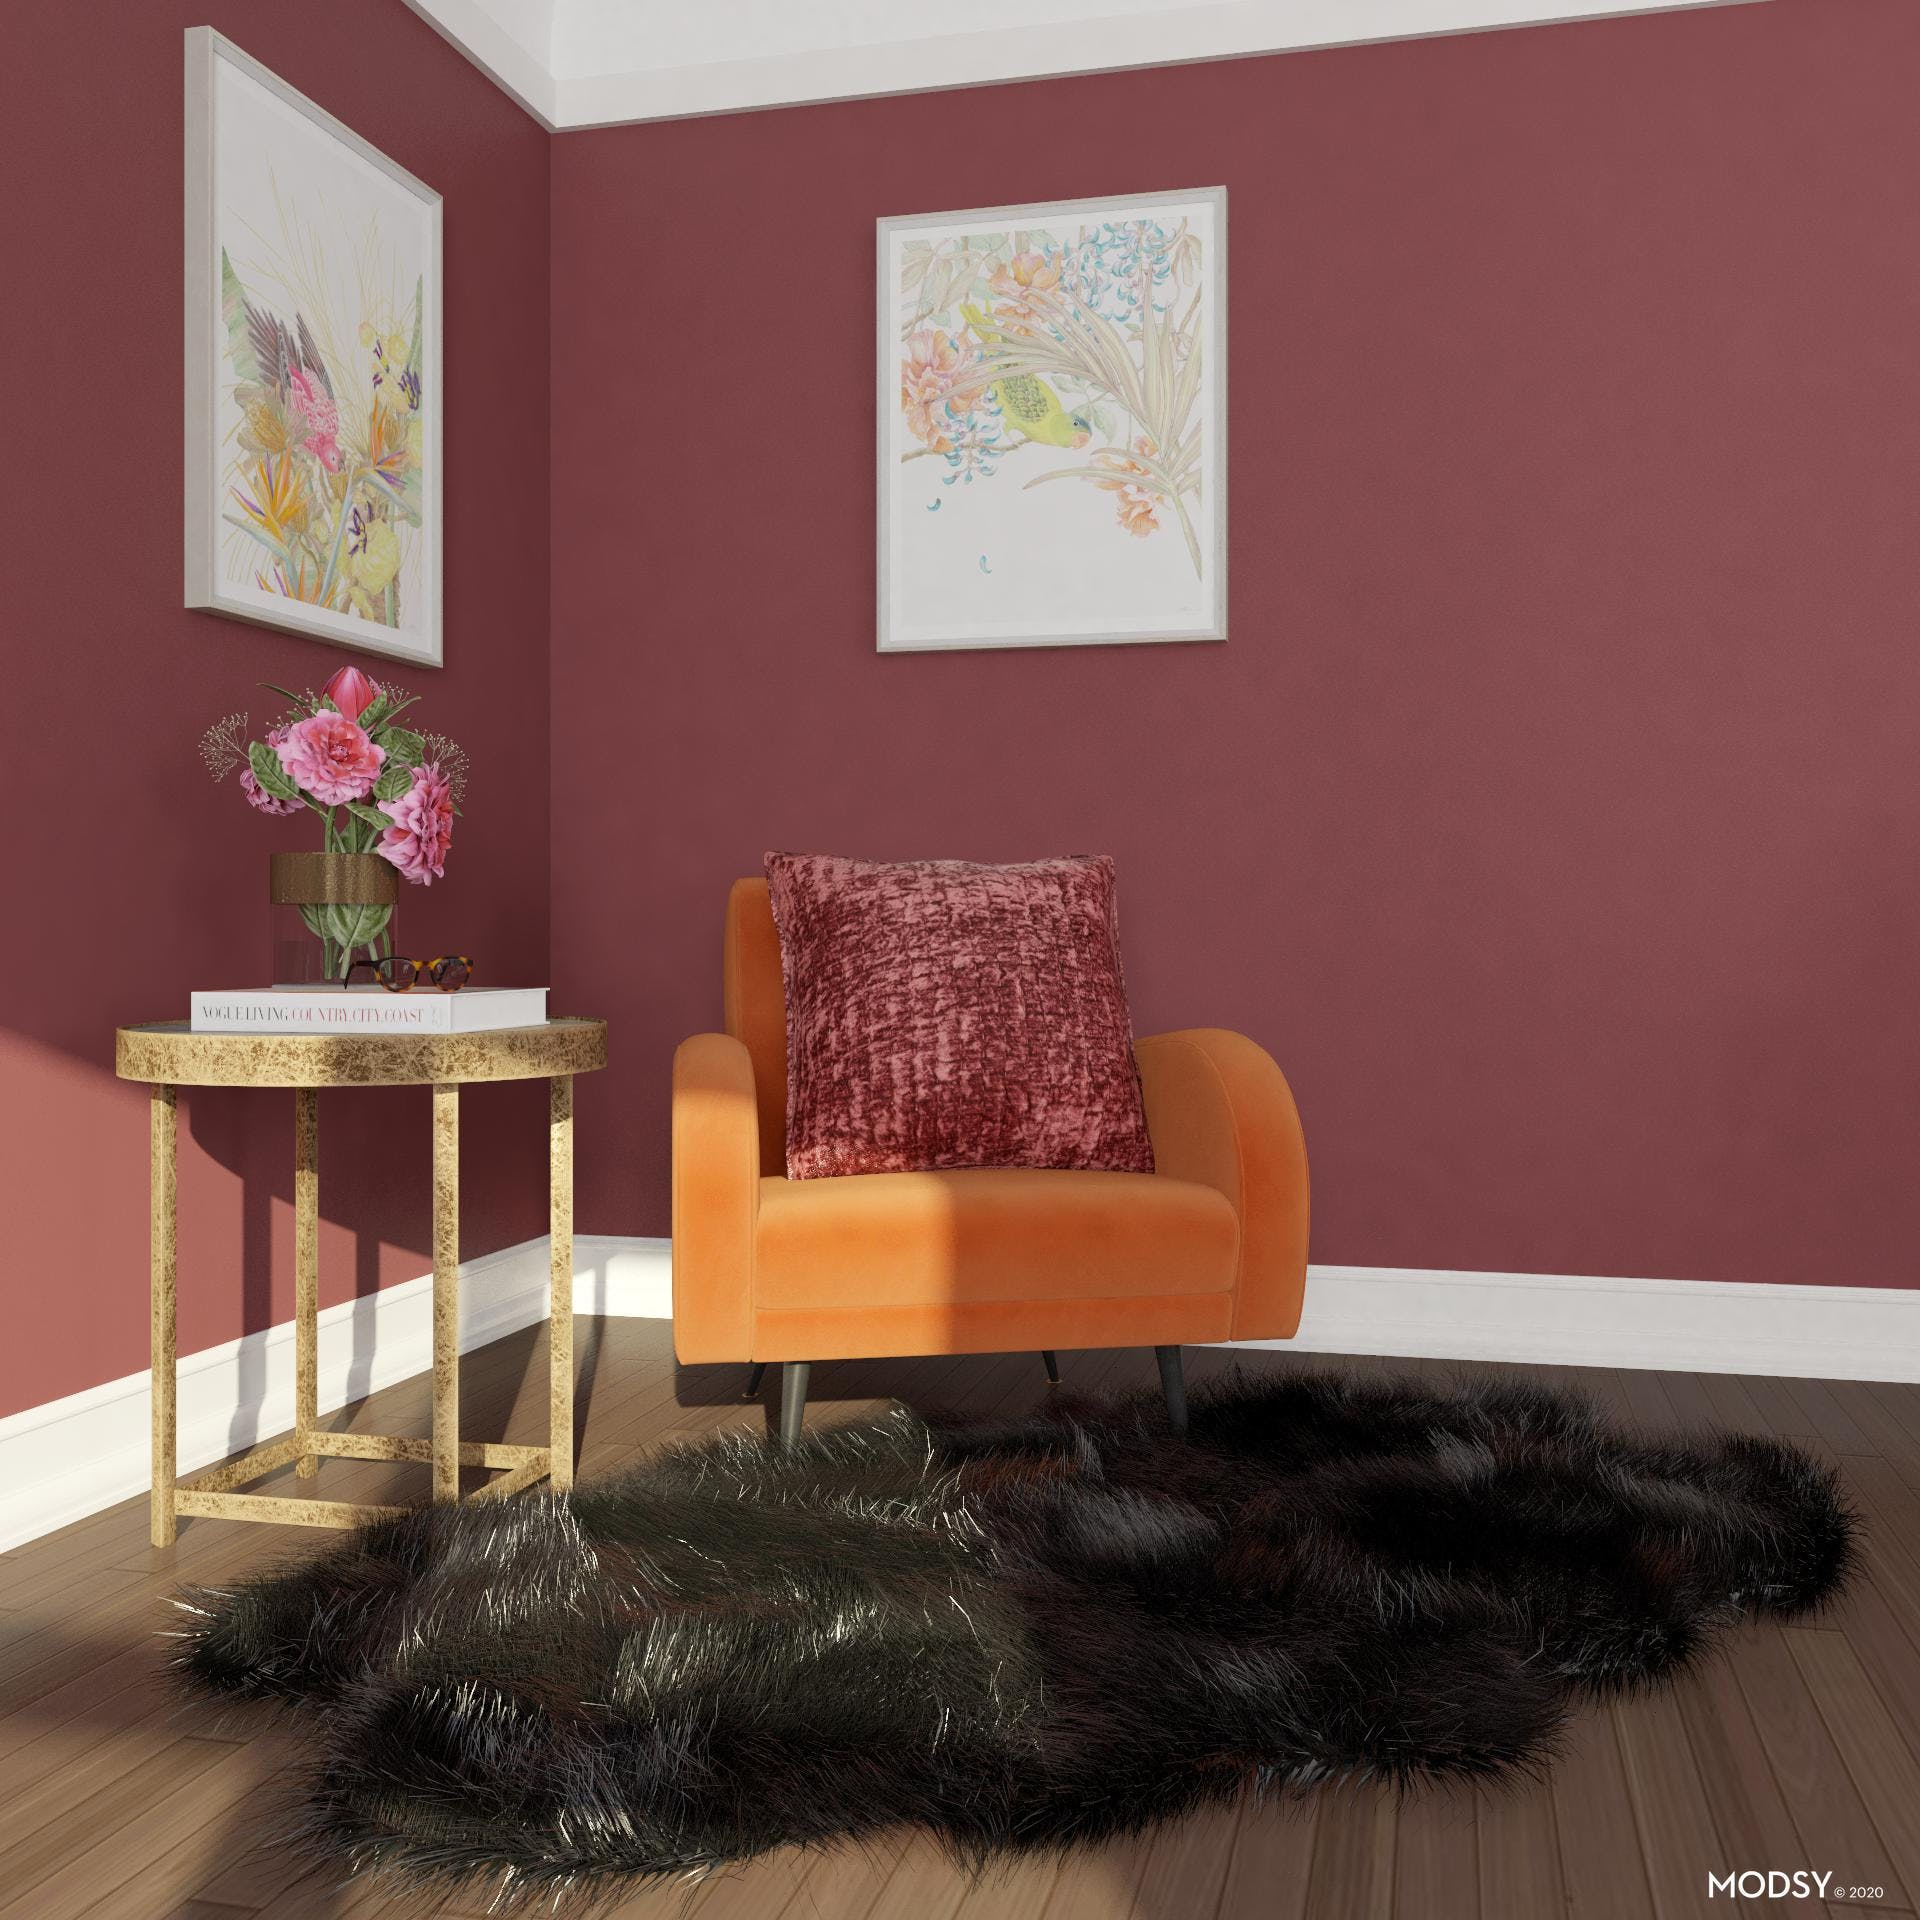 Eclectic Fiery Vibrance